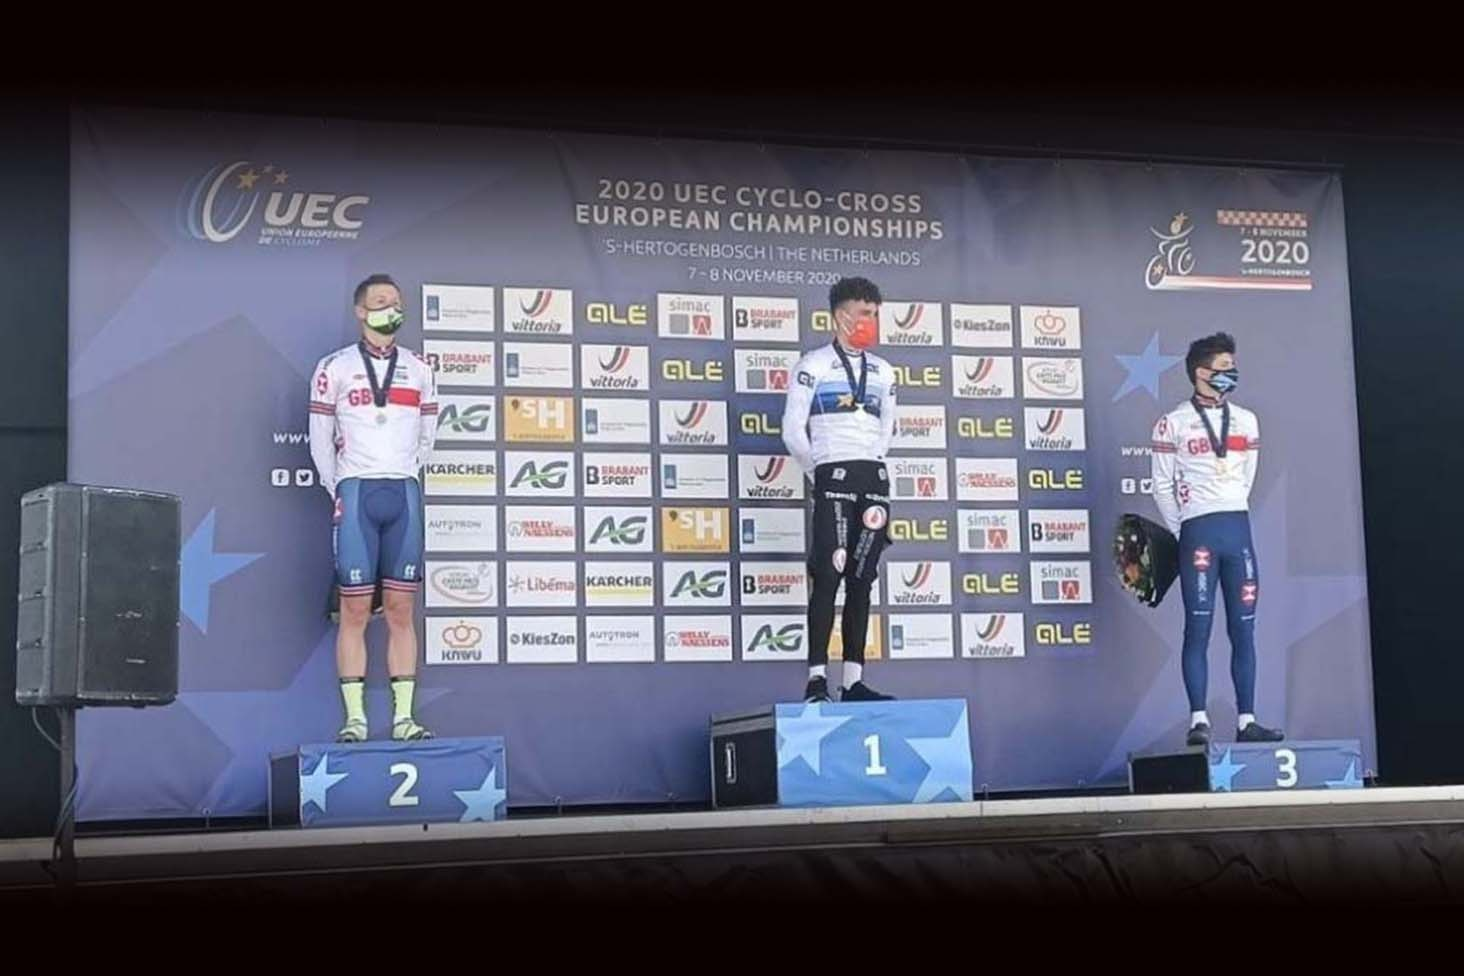 Northwave - The British Thomas Mein wins the Ciclocross European Championship Silver Medal